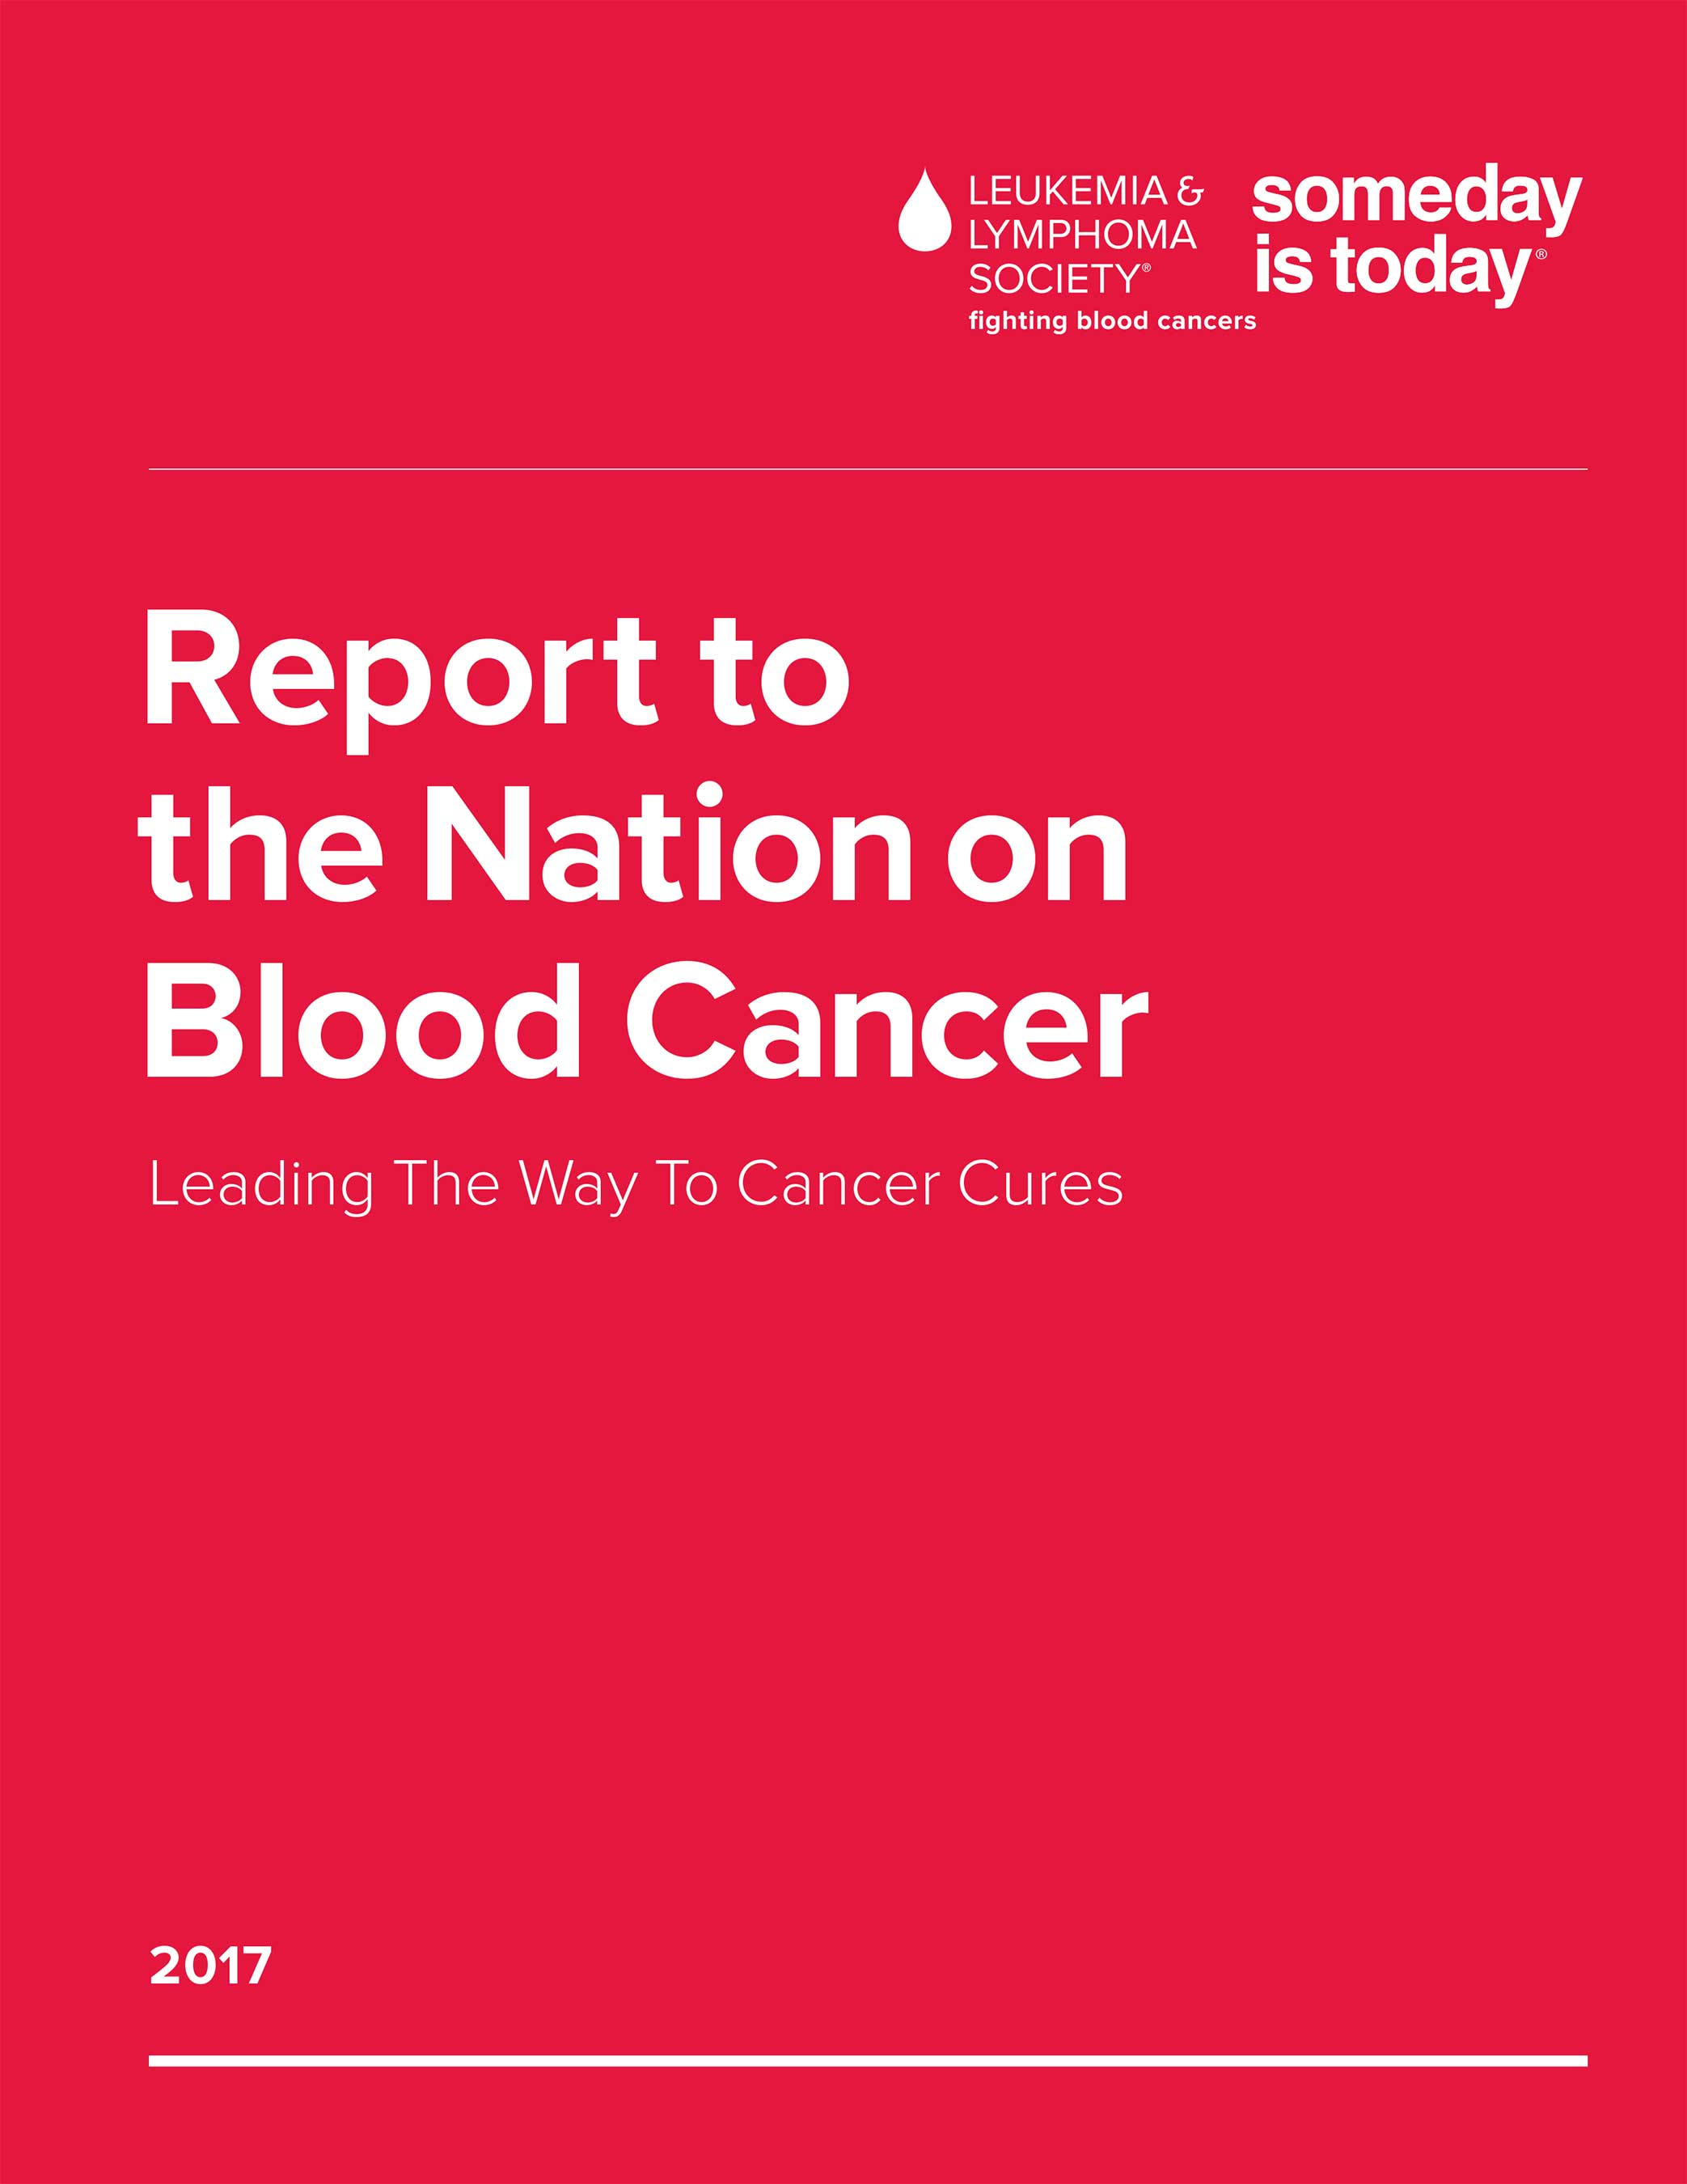 Precision Medicine and Immunotherapy Hold Promise for Blood